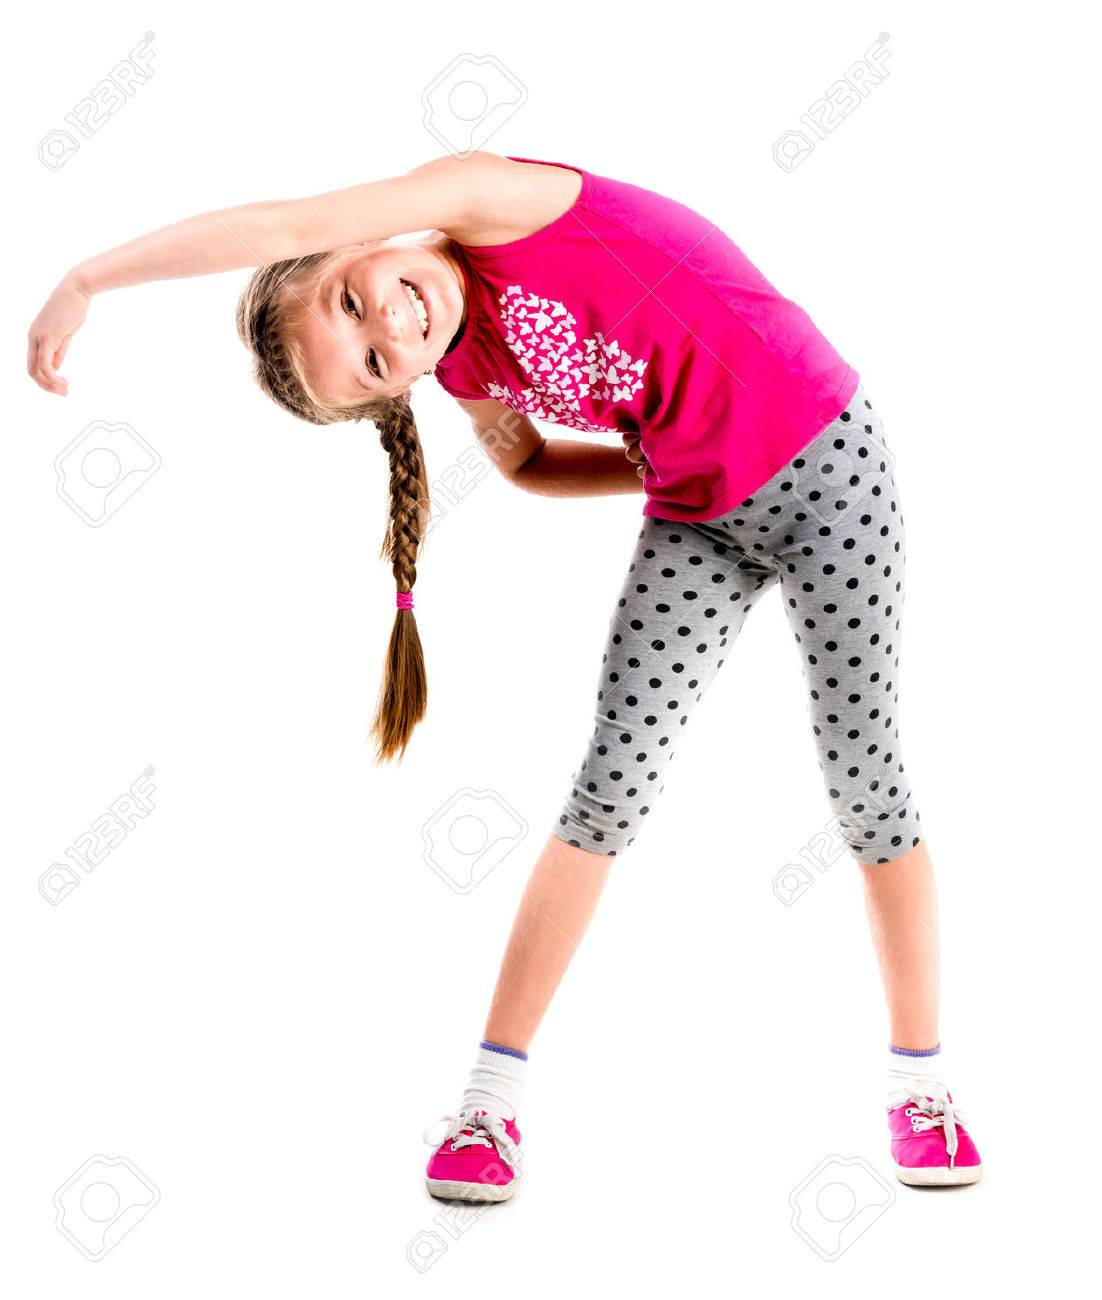 little girl standing with hands on sides doing fitness - 44481587